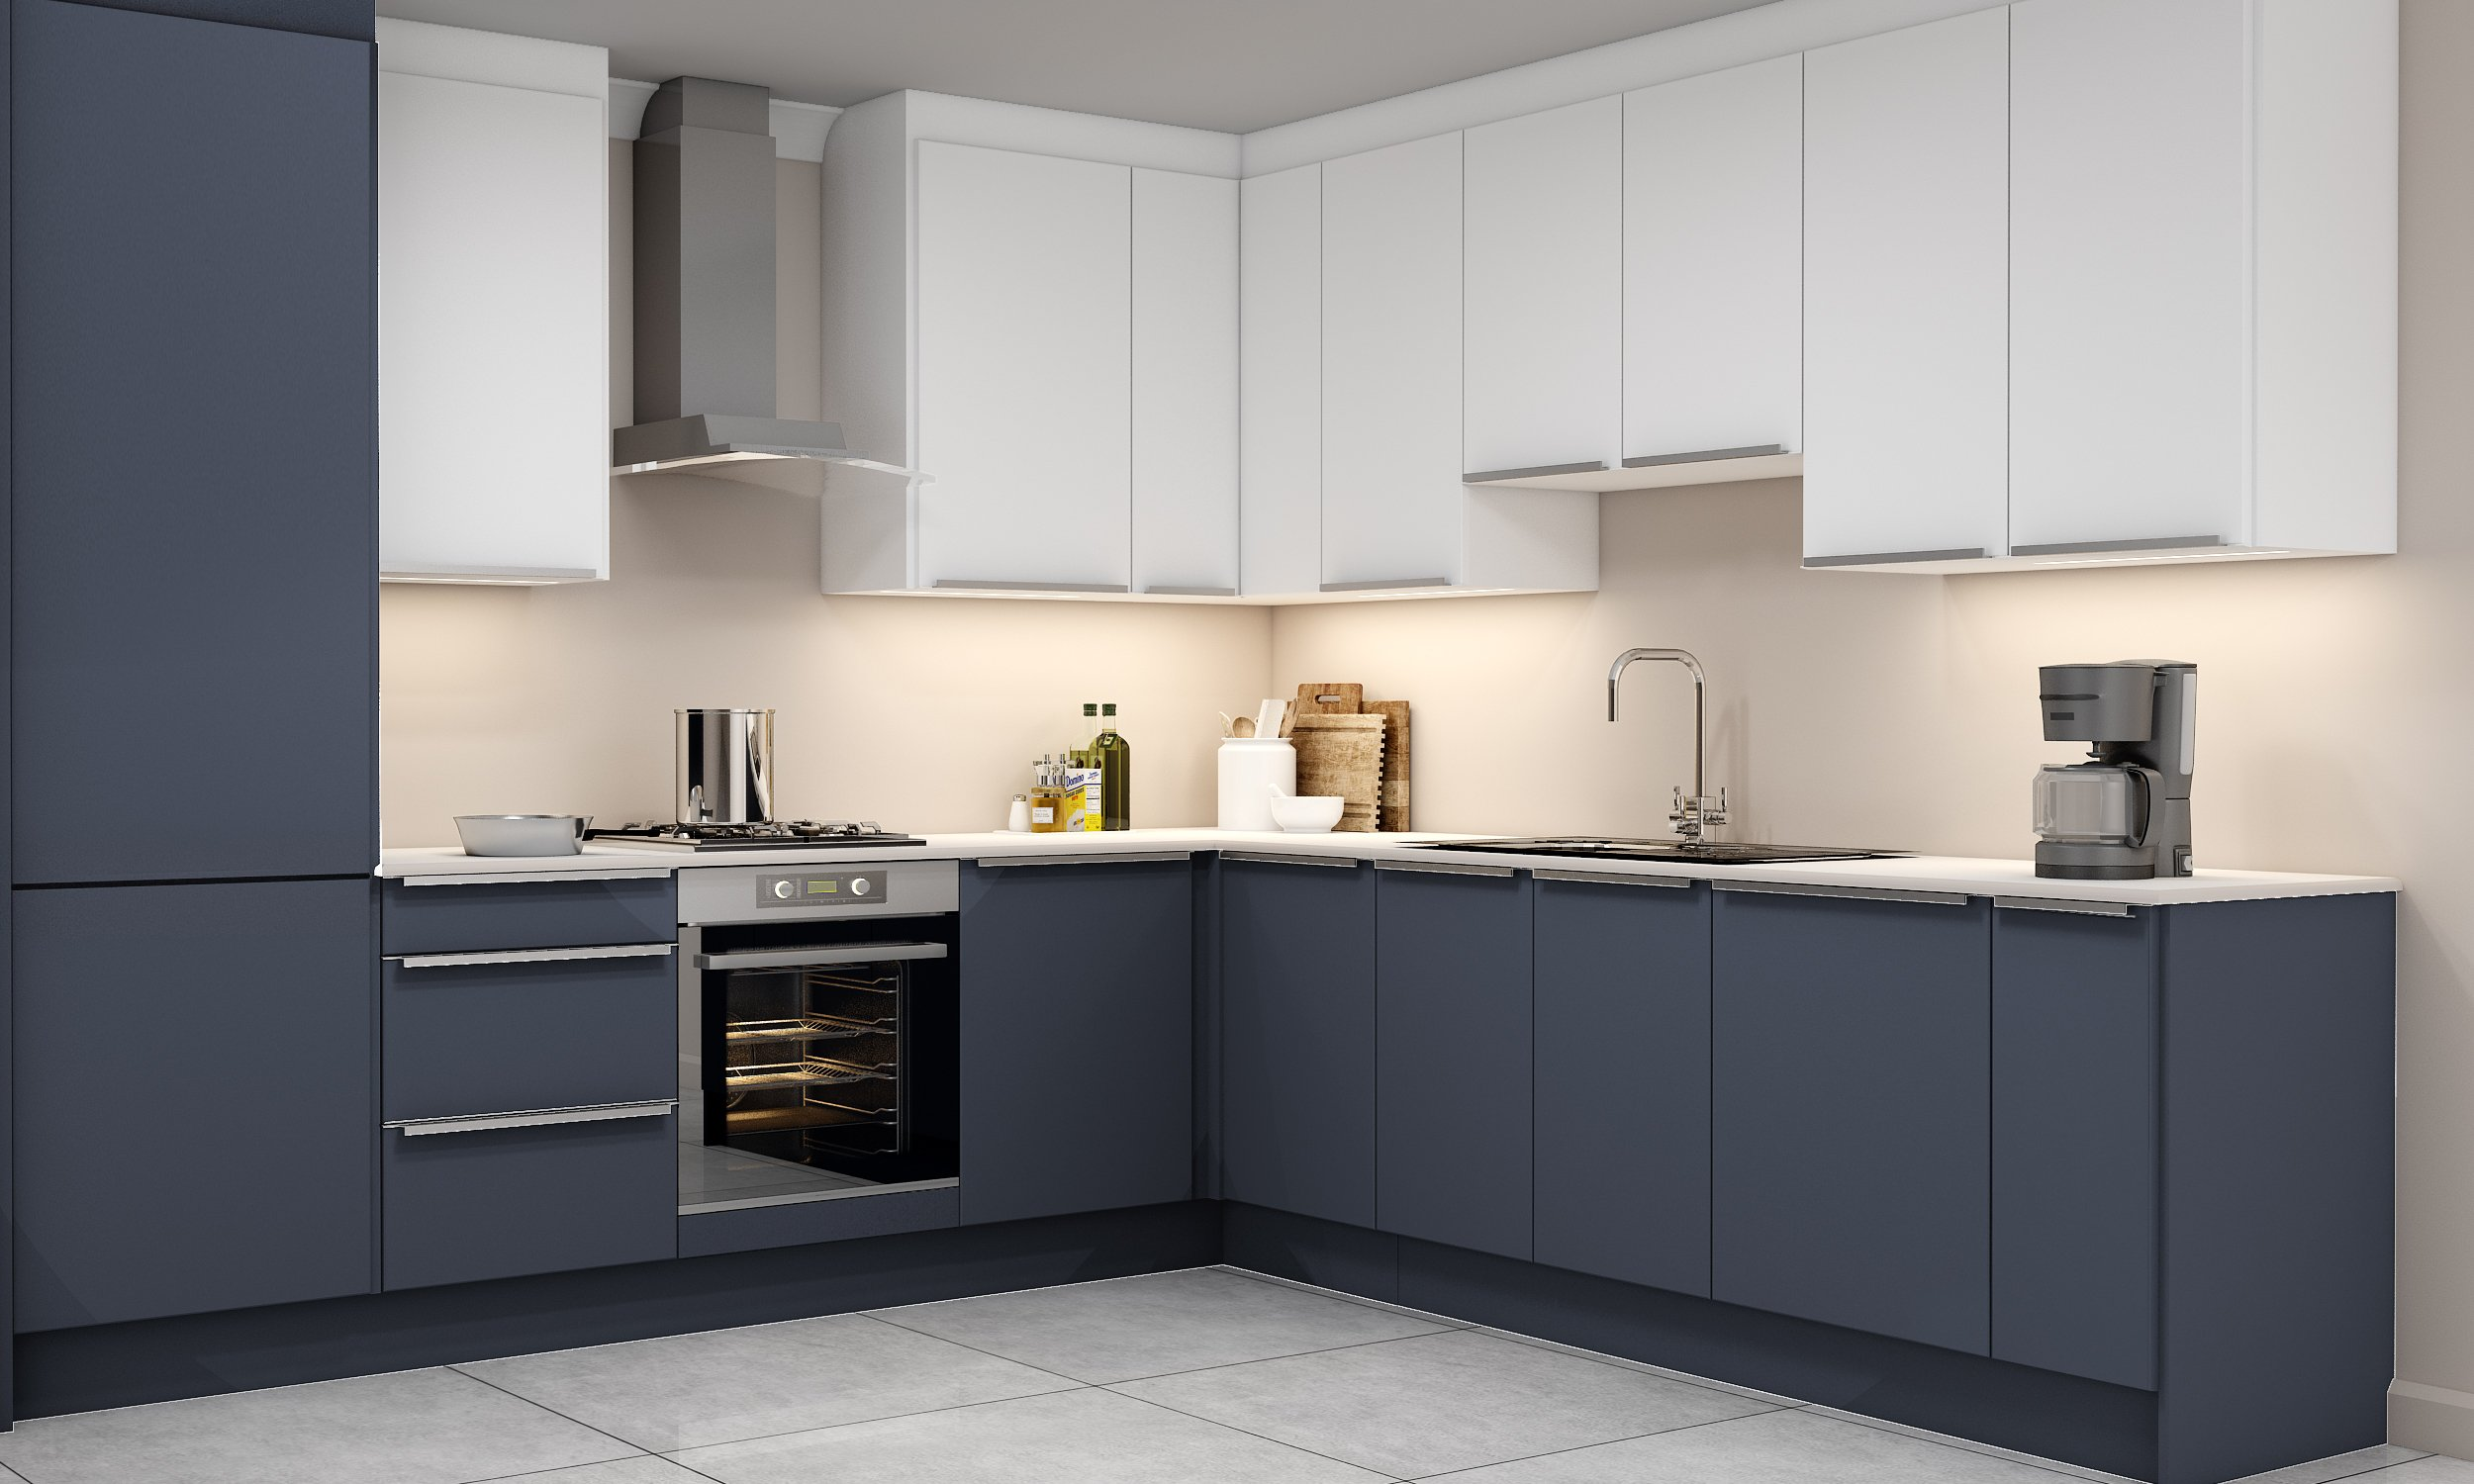 10ft X 10ft Kitchen With Profile Handle in Indigo Blue and White Matt